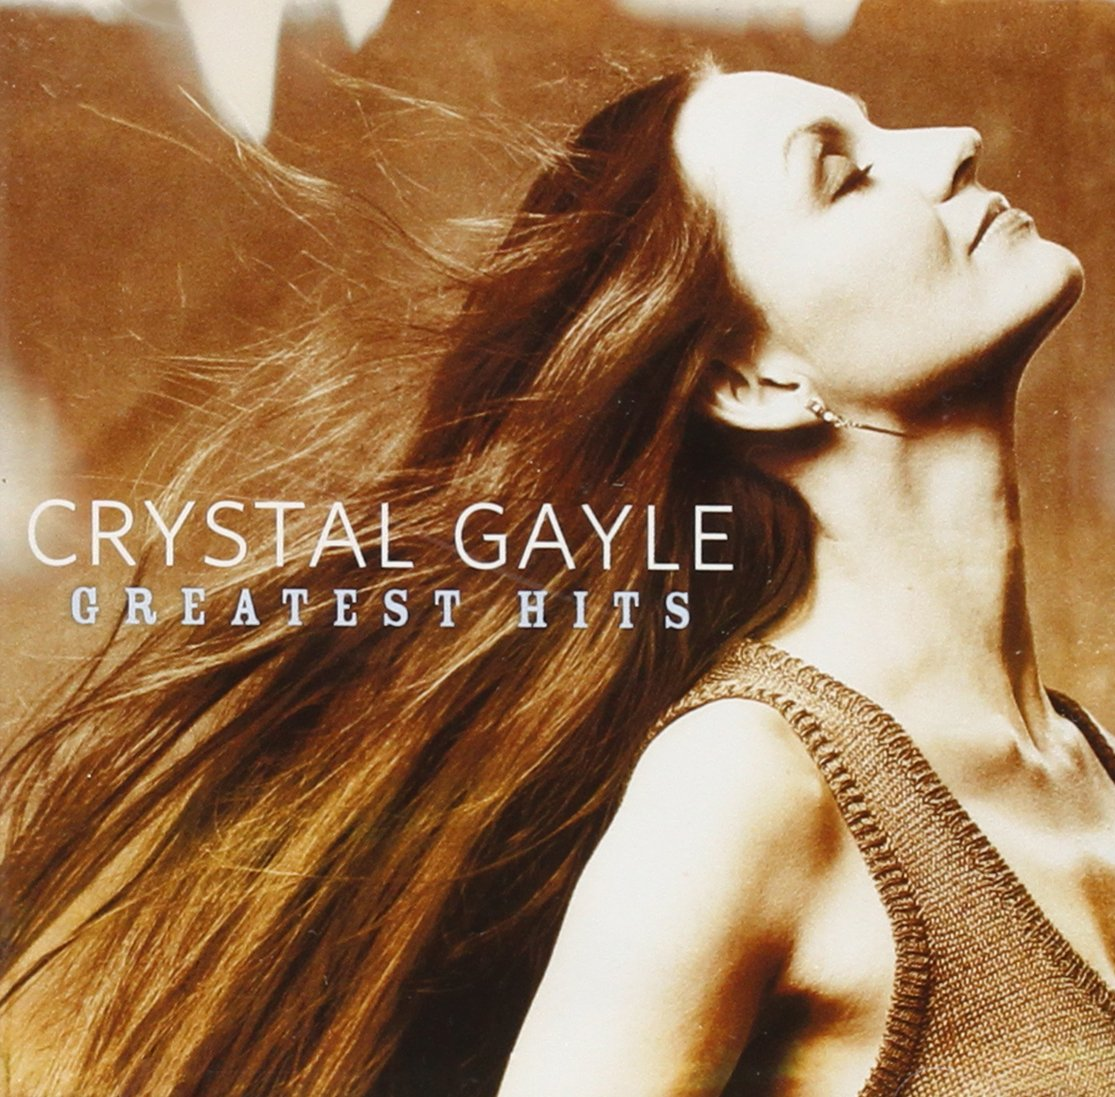 CD : Crystal Gayle - Greatest Hits (CD)